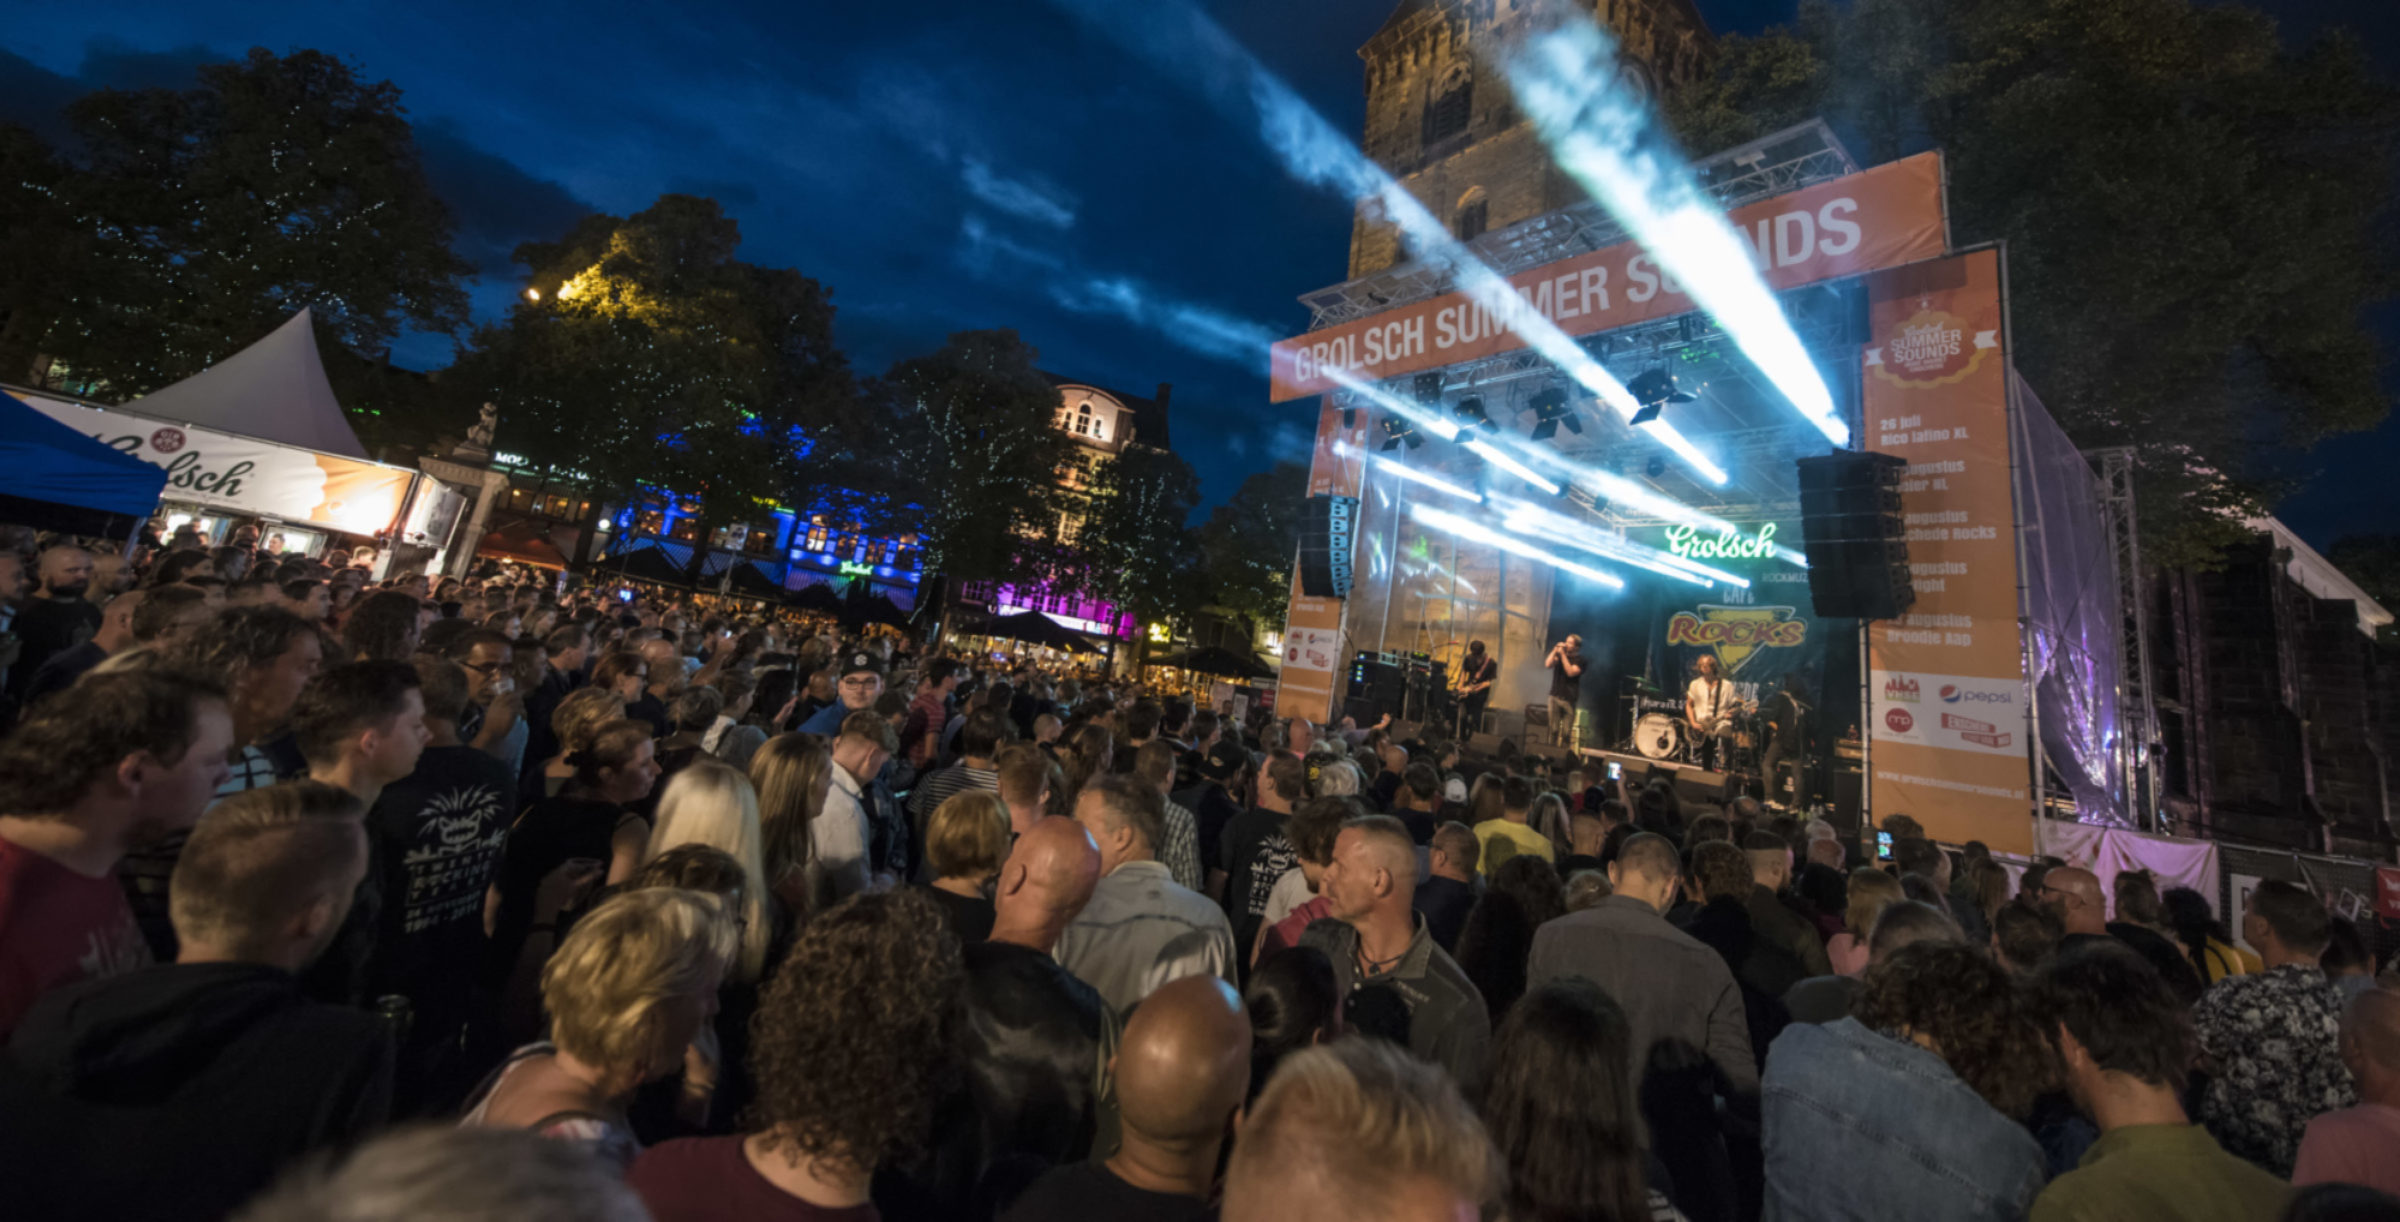 Events in Enschede